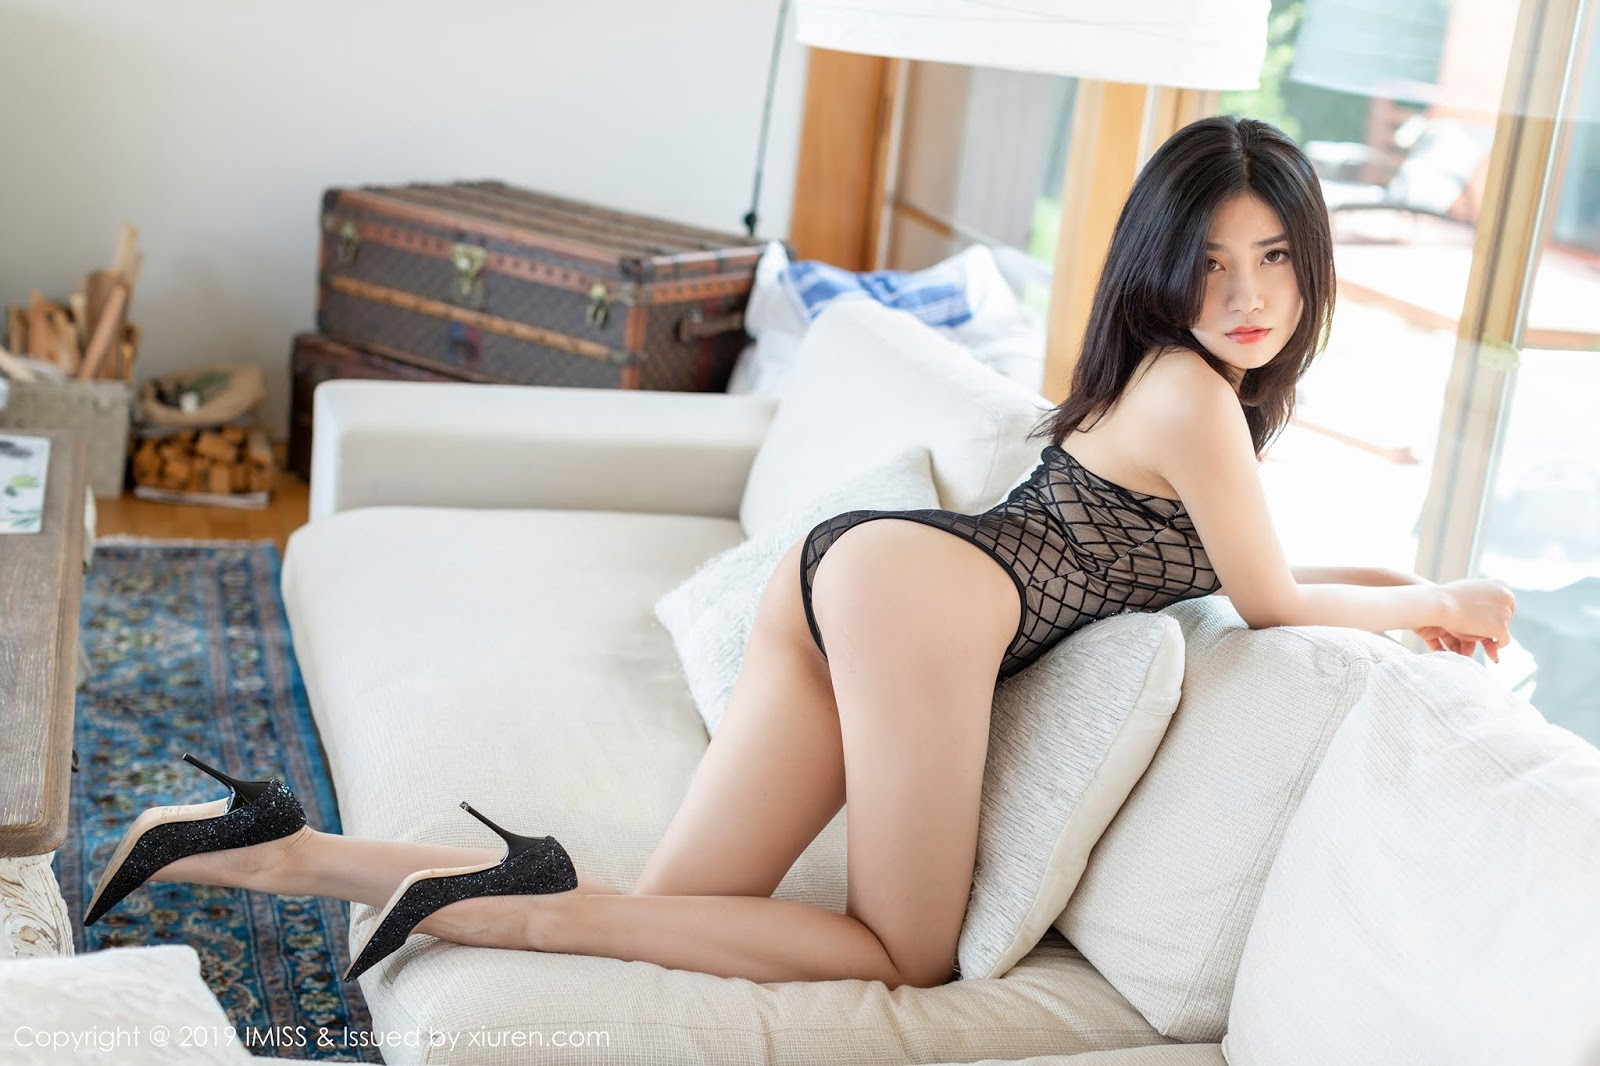 [IMISS] VOL 341- Sabrina - Asigirl.com - Download free high quality sexy stunning asian pictures